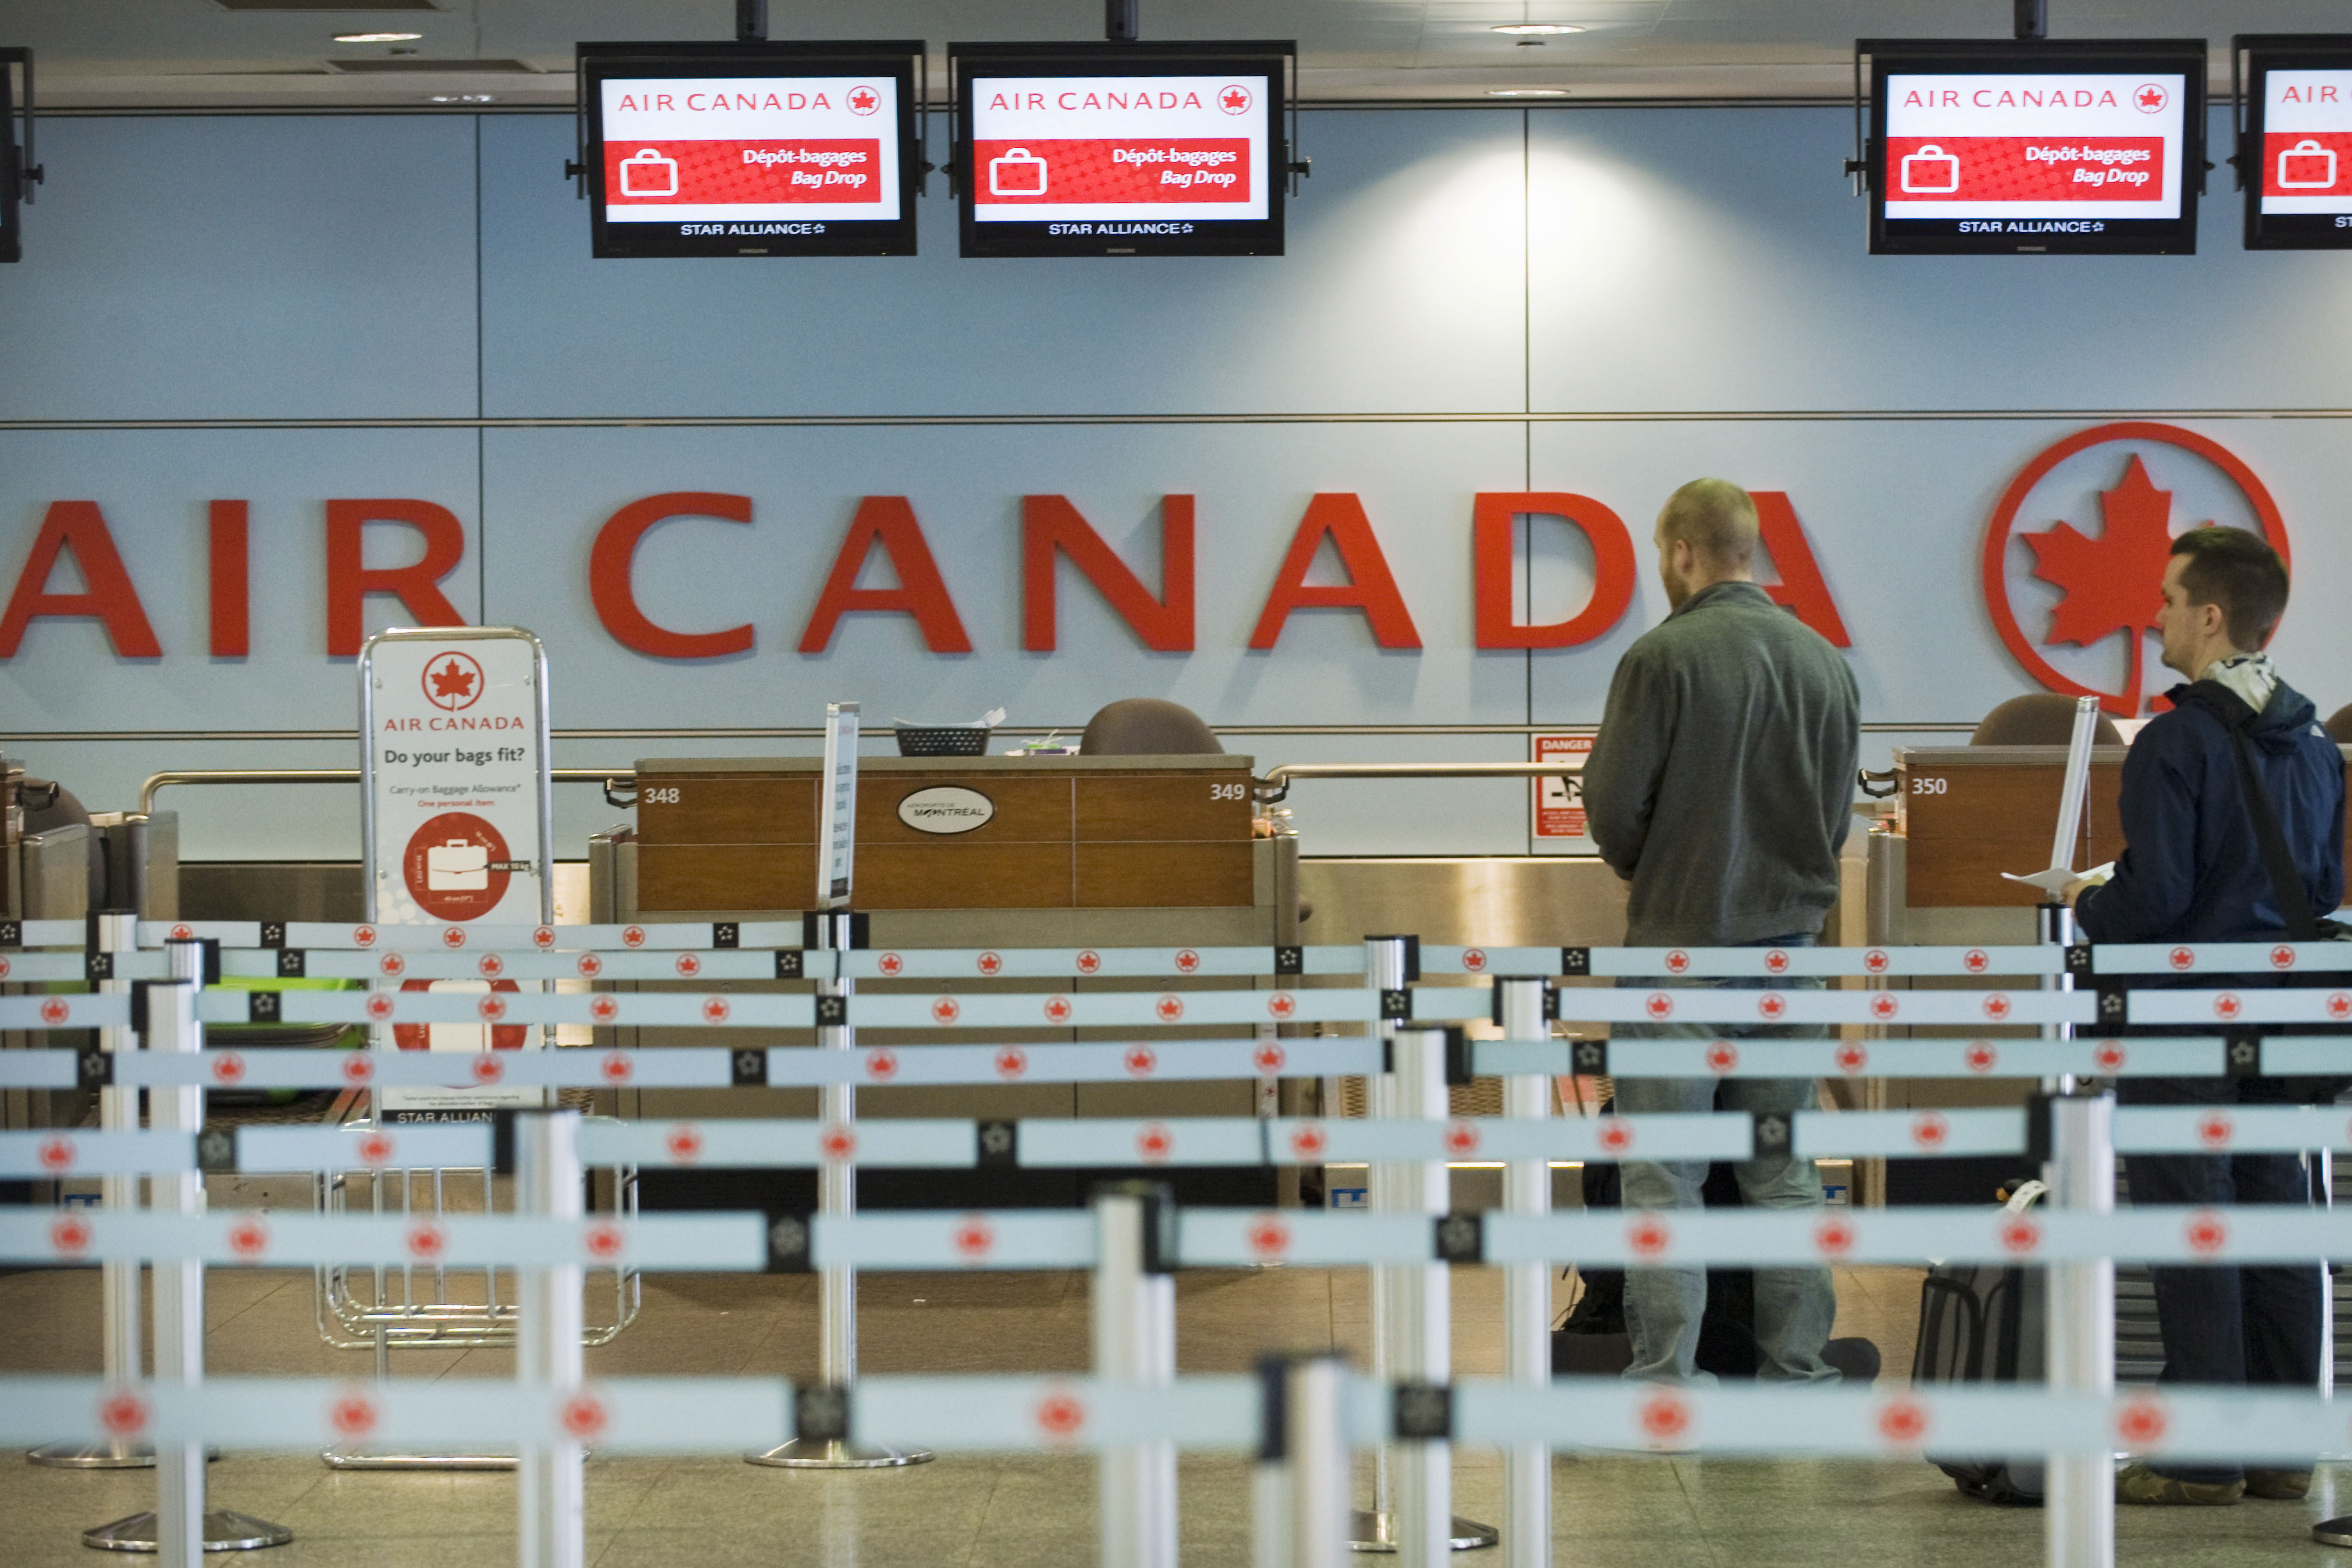 Passengers queue at an Air Canada check-in desk at Trudeau Airport in Montreal on April 13, 2012. THE CANADIAN PRESS/Graham Hughes